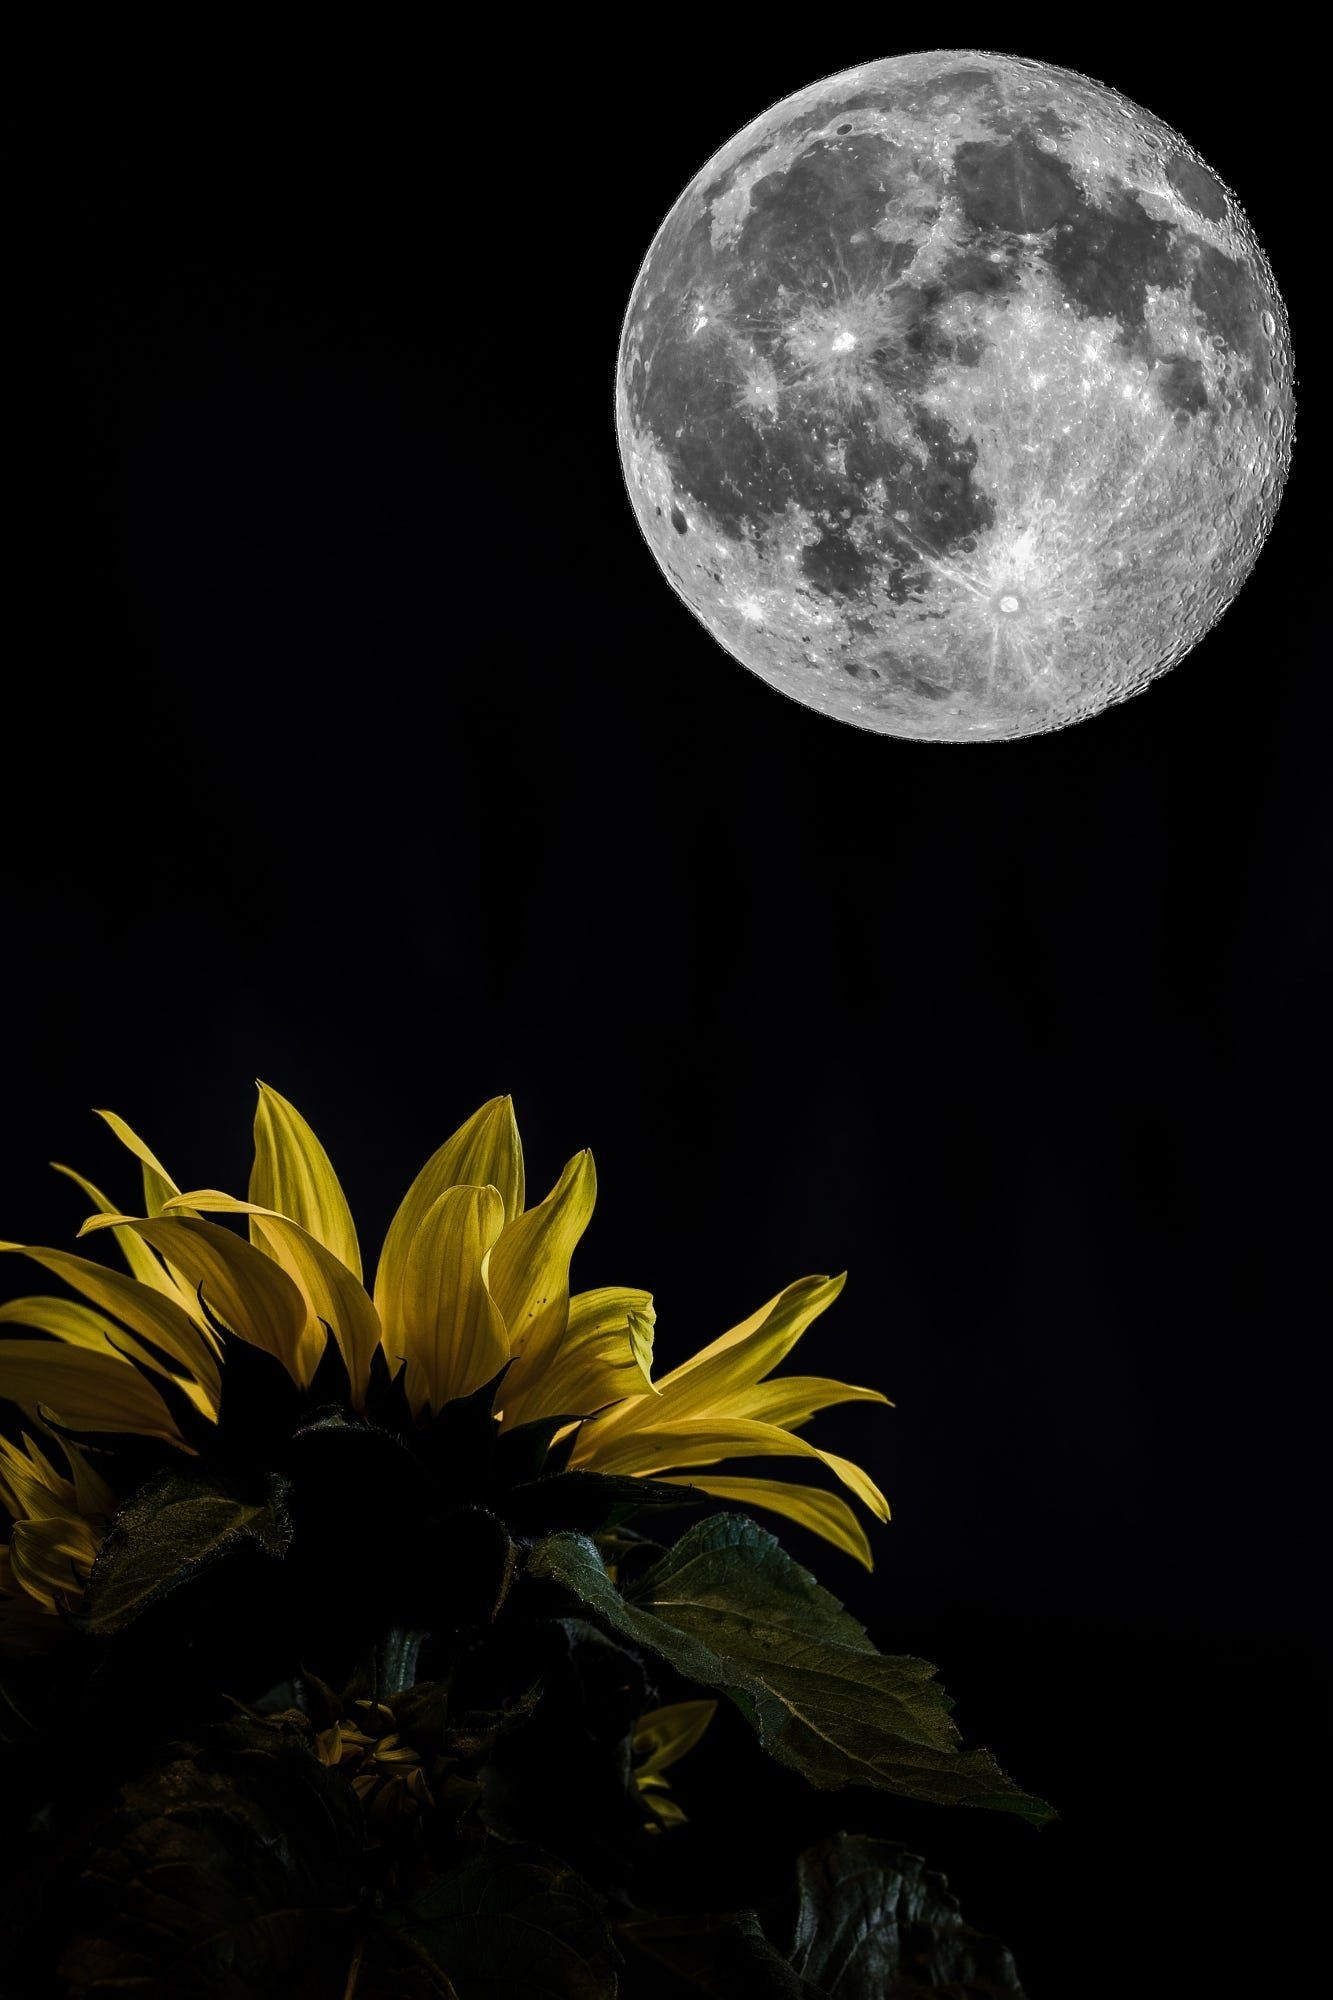 Related Image | Artwork | M O O N & S T A R S | Sunflower Pictures with Moon Pictures Moon Related Pictures